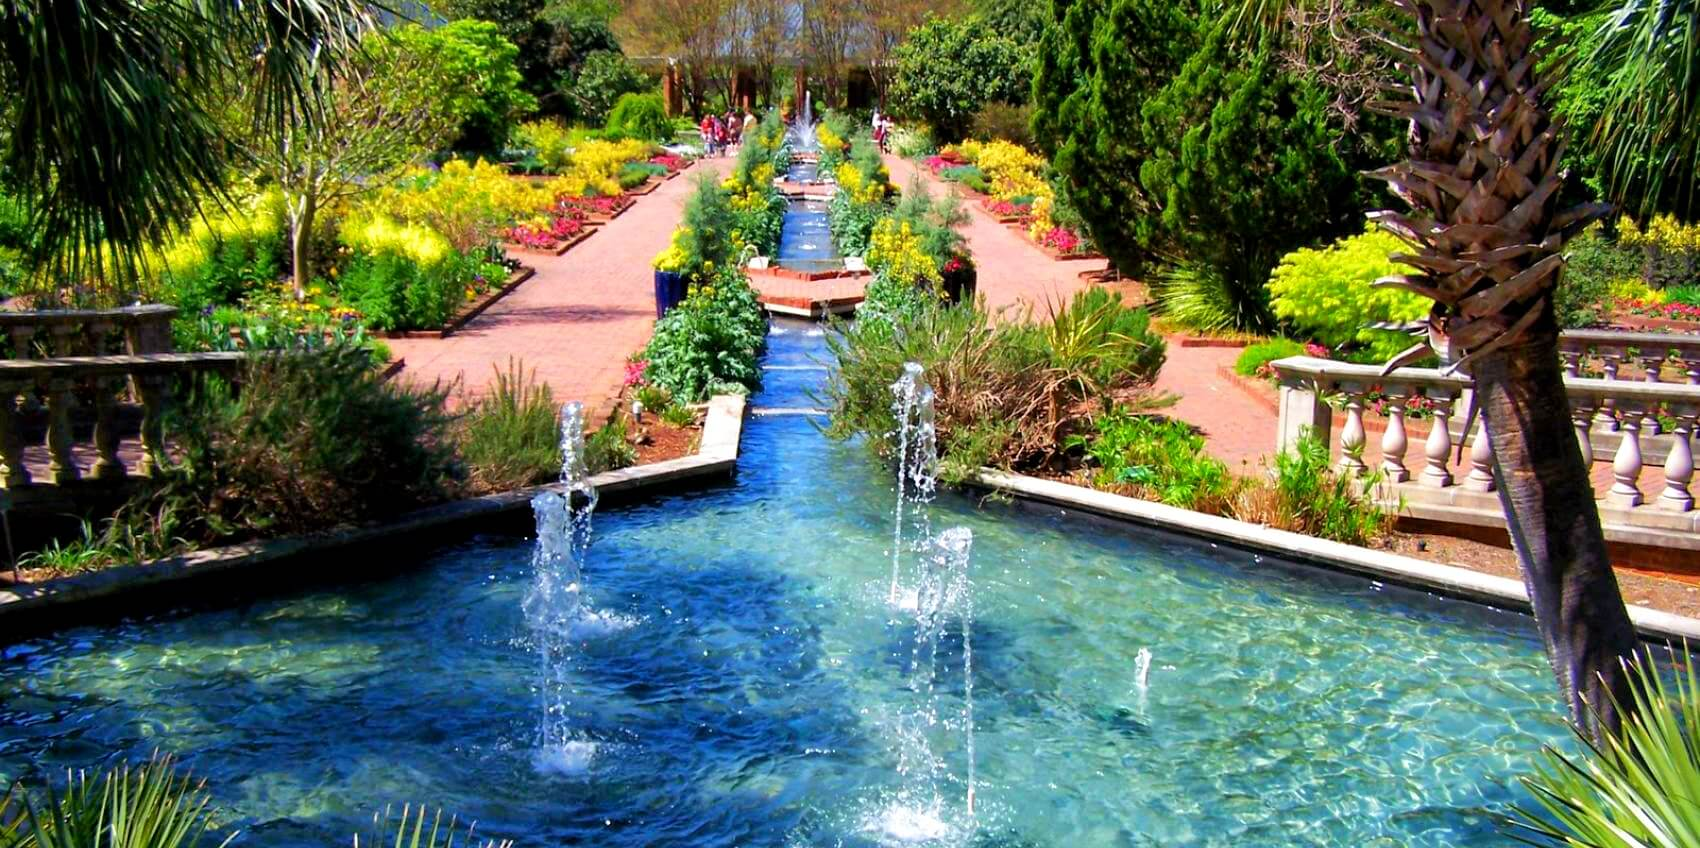 Riverbanks Botanical Garden, Columbia, South Carolina sctravelguide